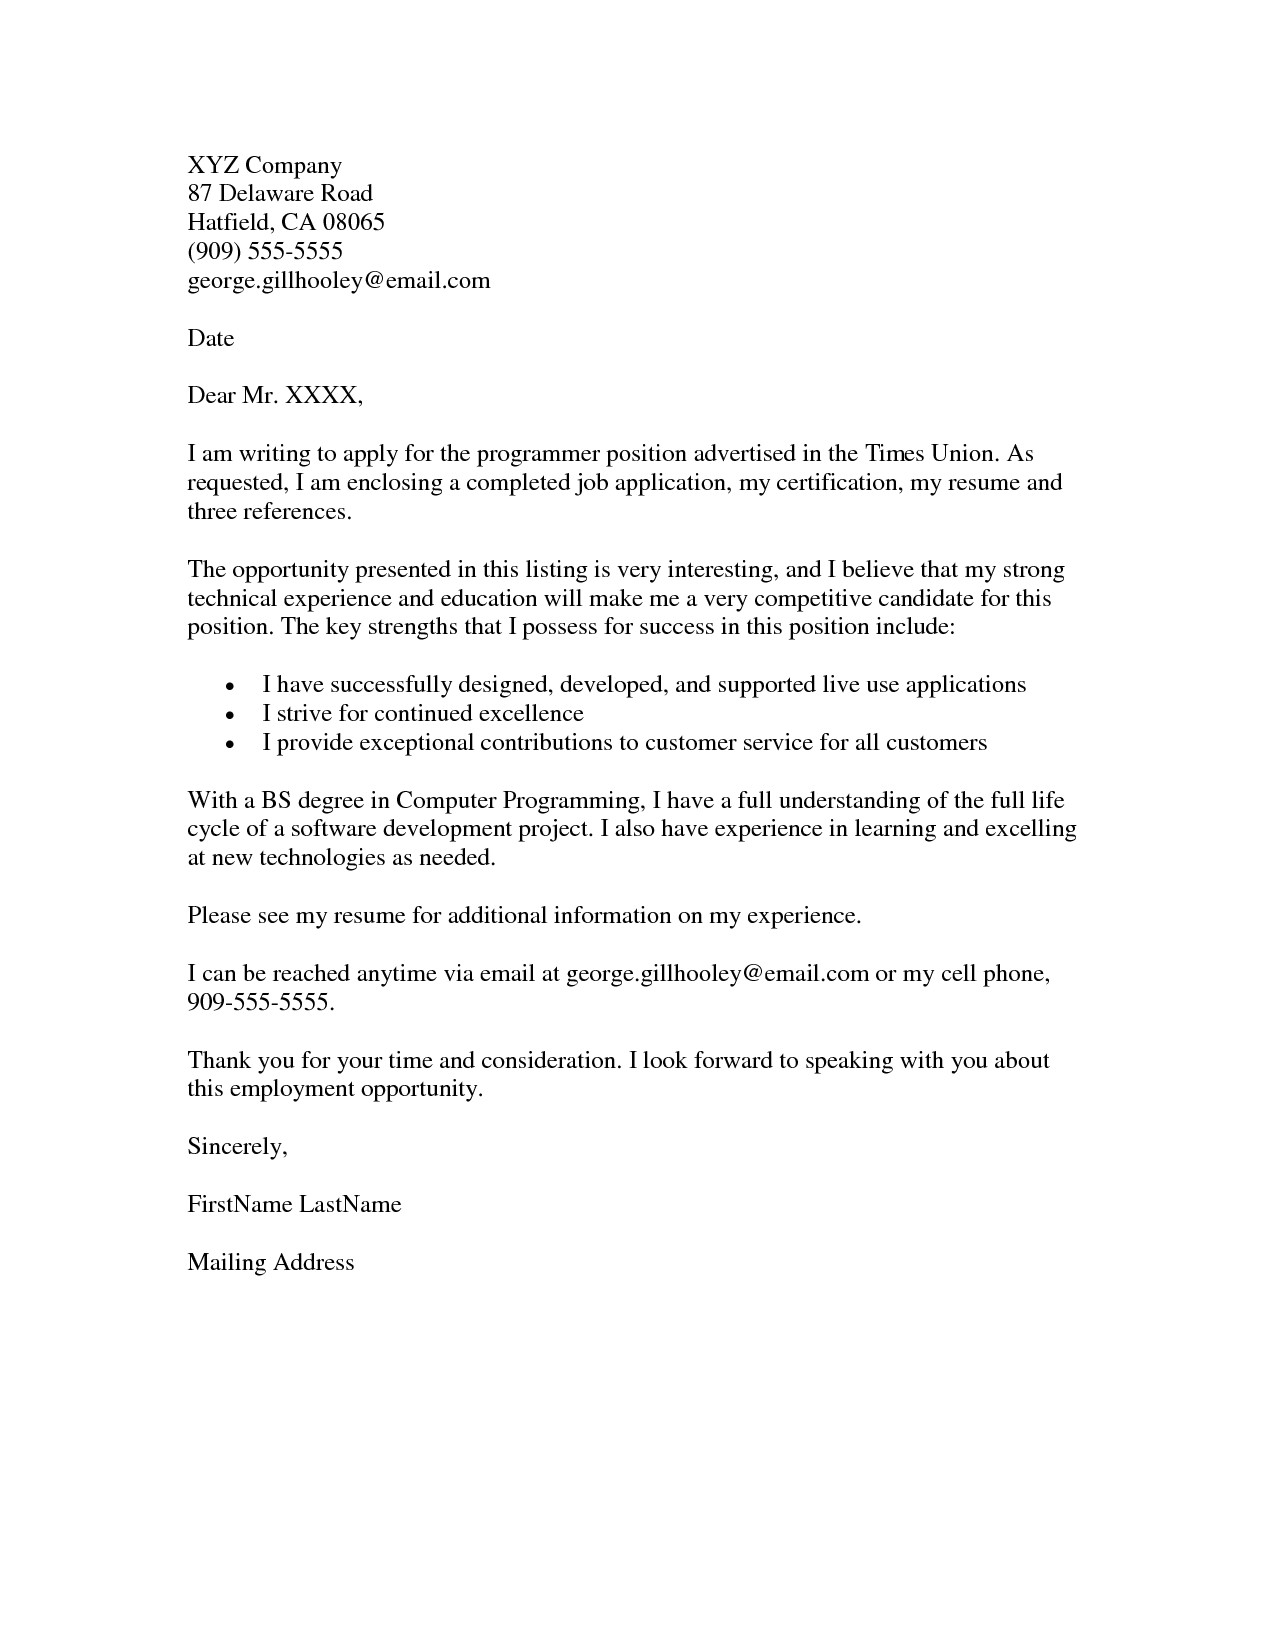 How to Type A Cover Letter for A Job Application Job Application Cover Letter Example Resumes Job